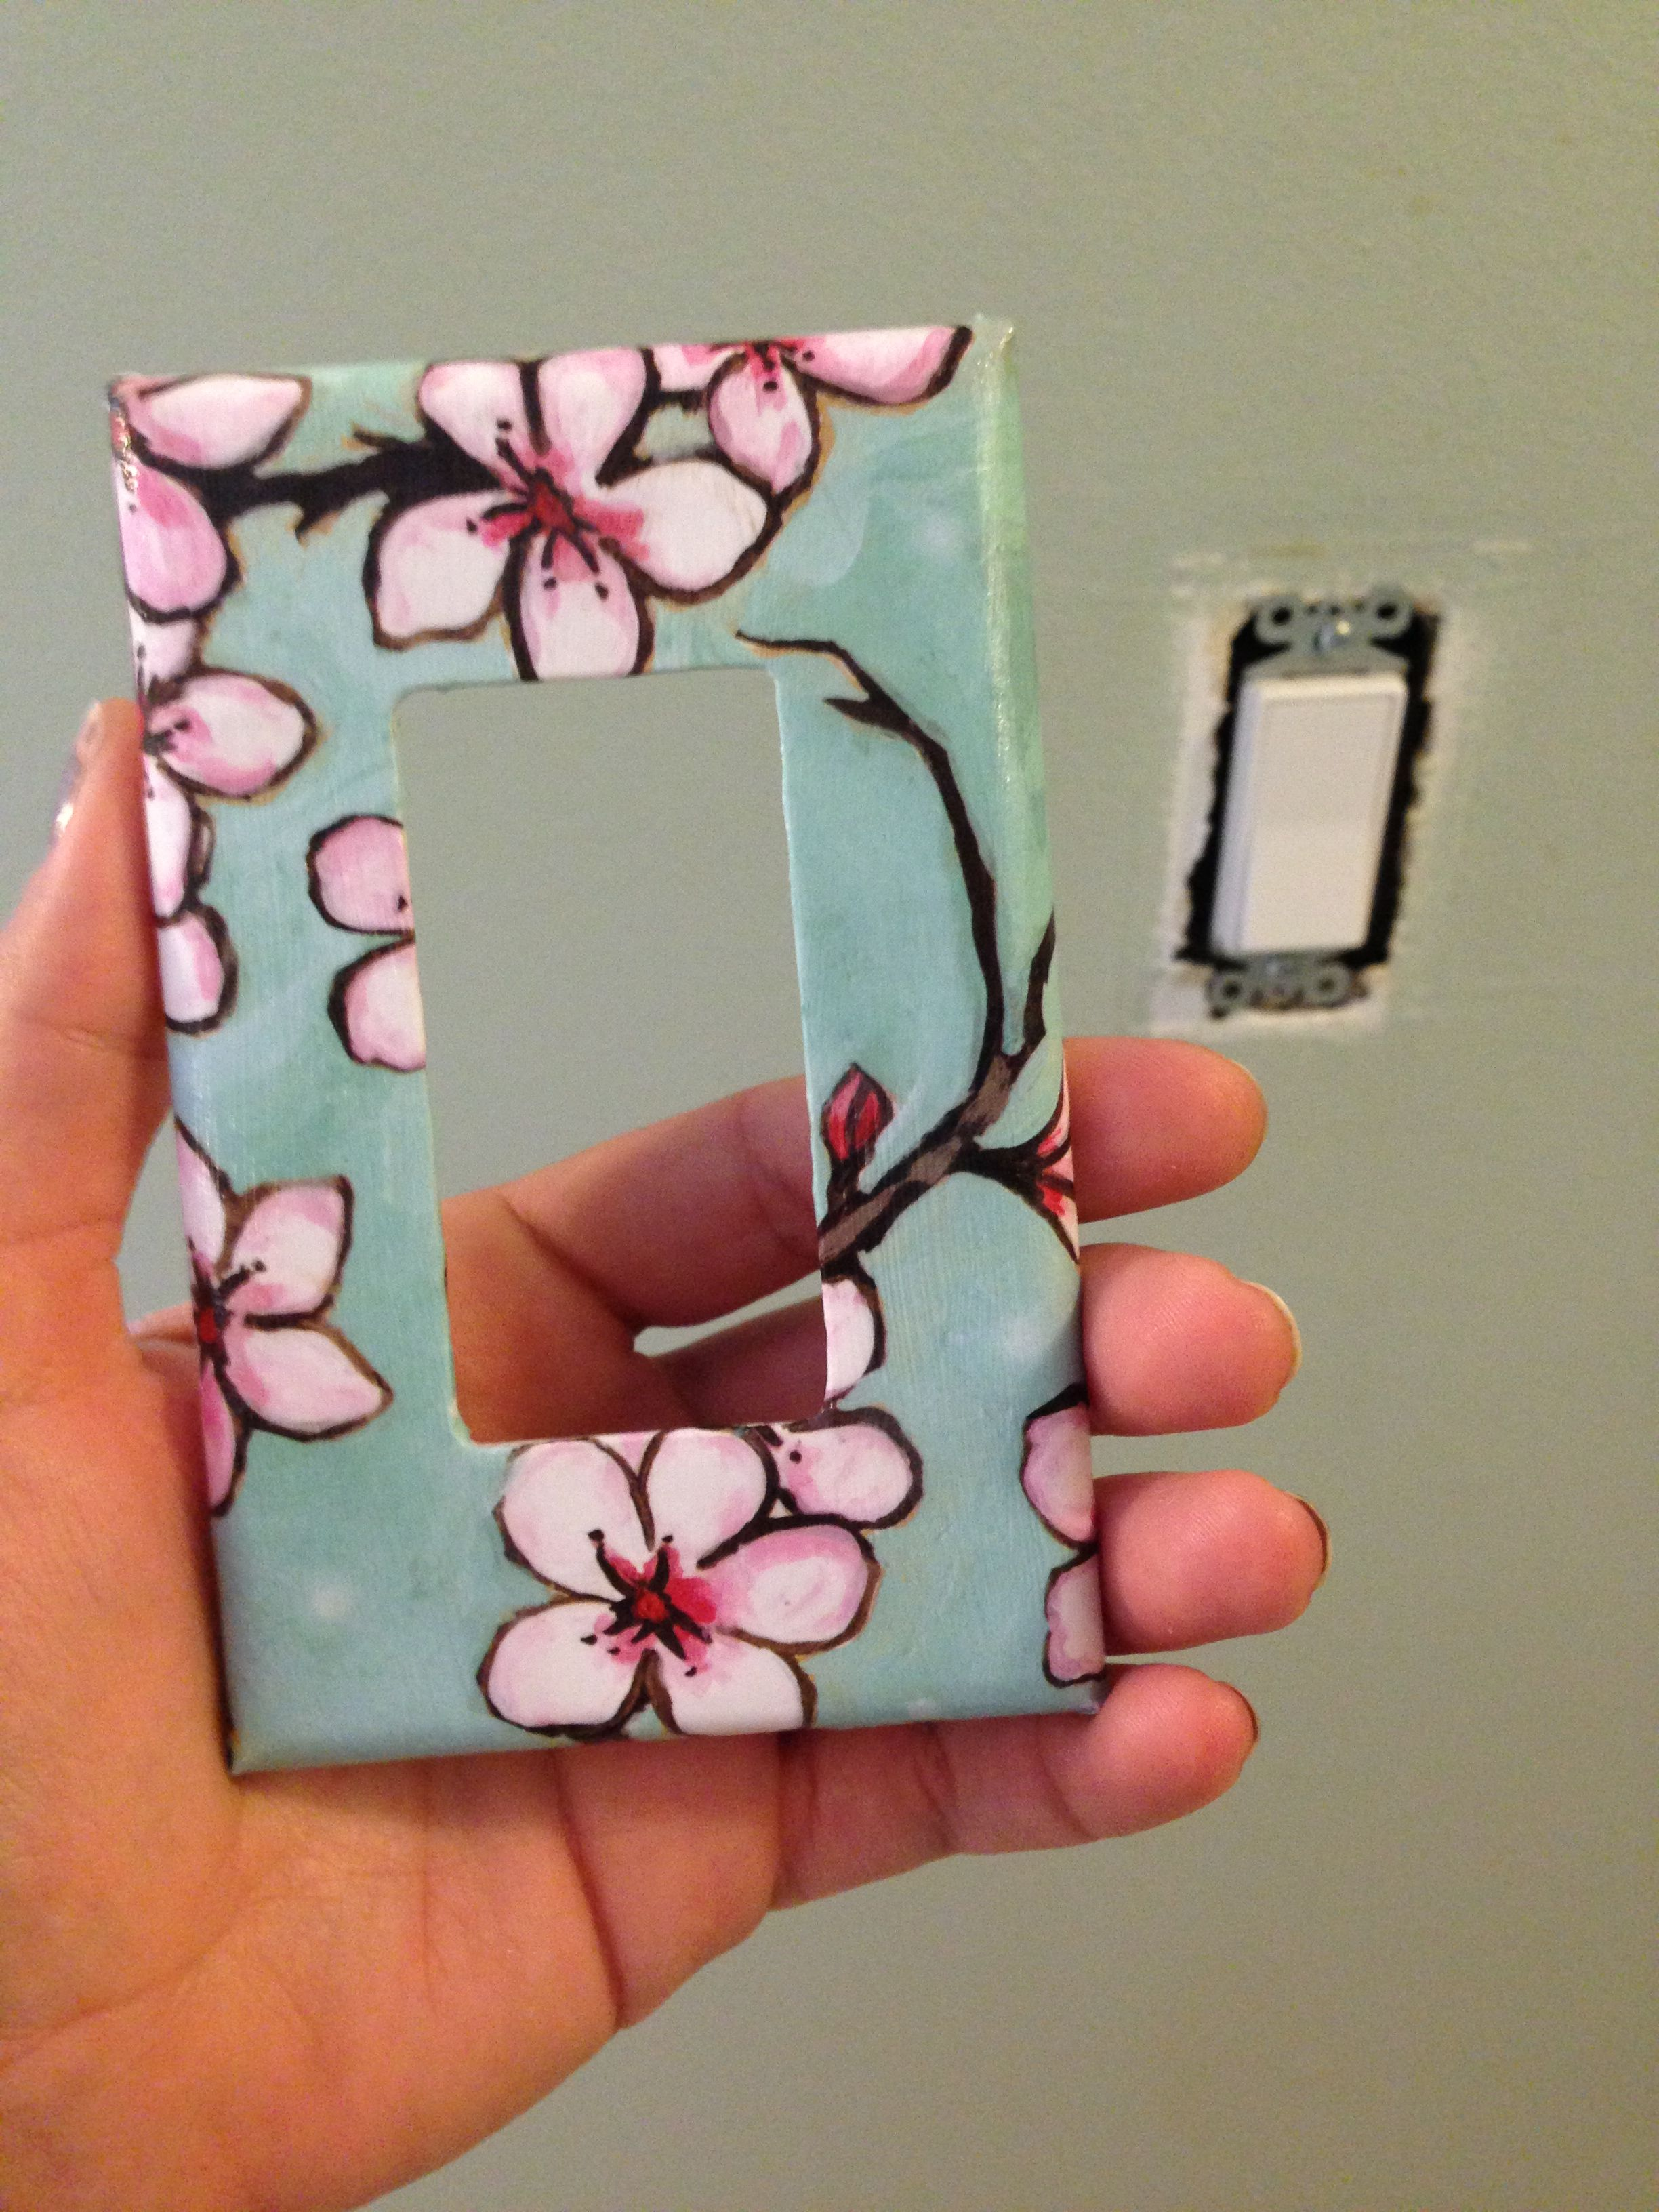 Another Mod Podge Light Switch Cover Our Pinterest Creations